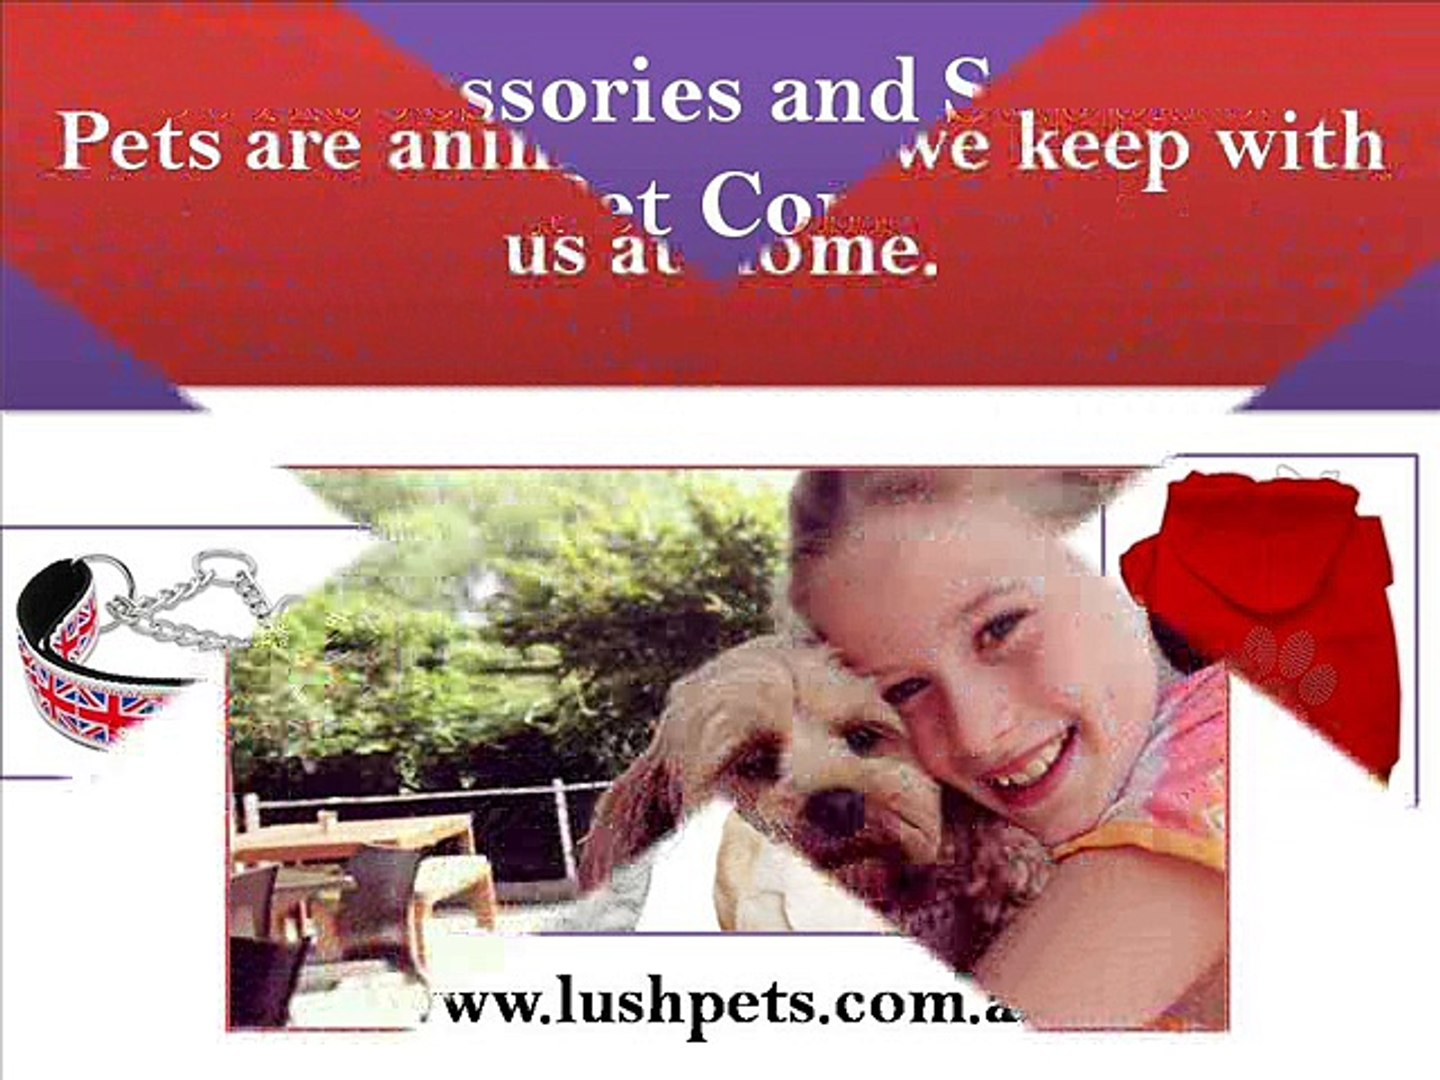 Pet Accessories and Supplies - Lush Pets